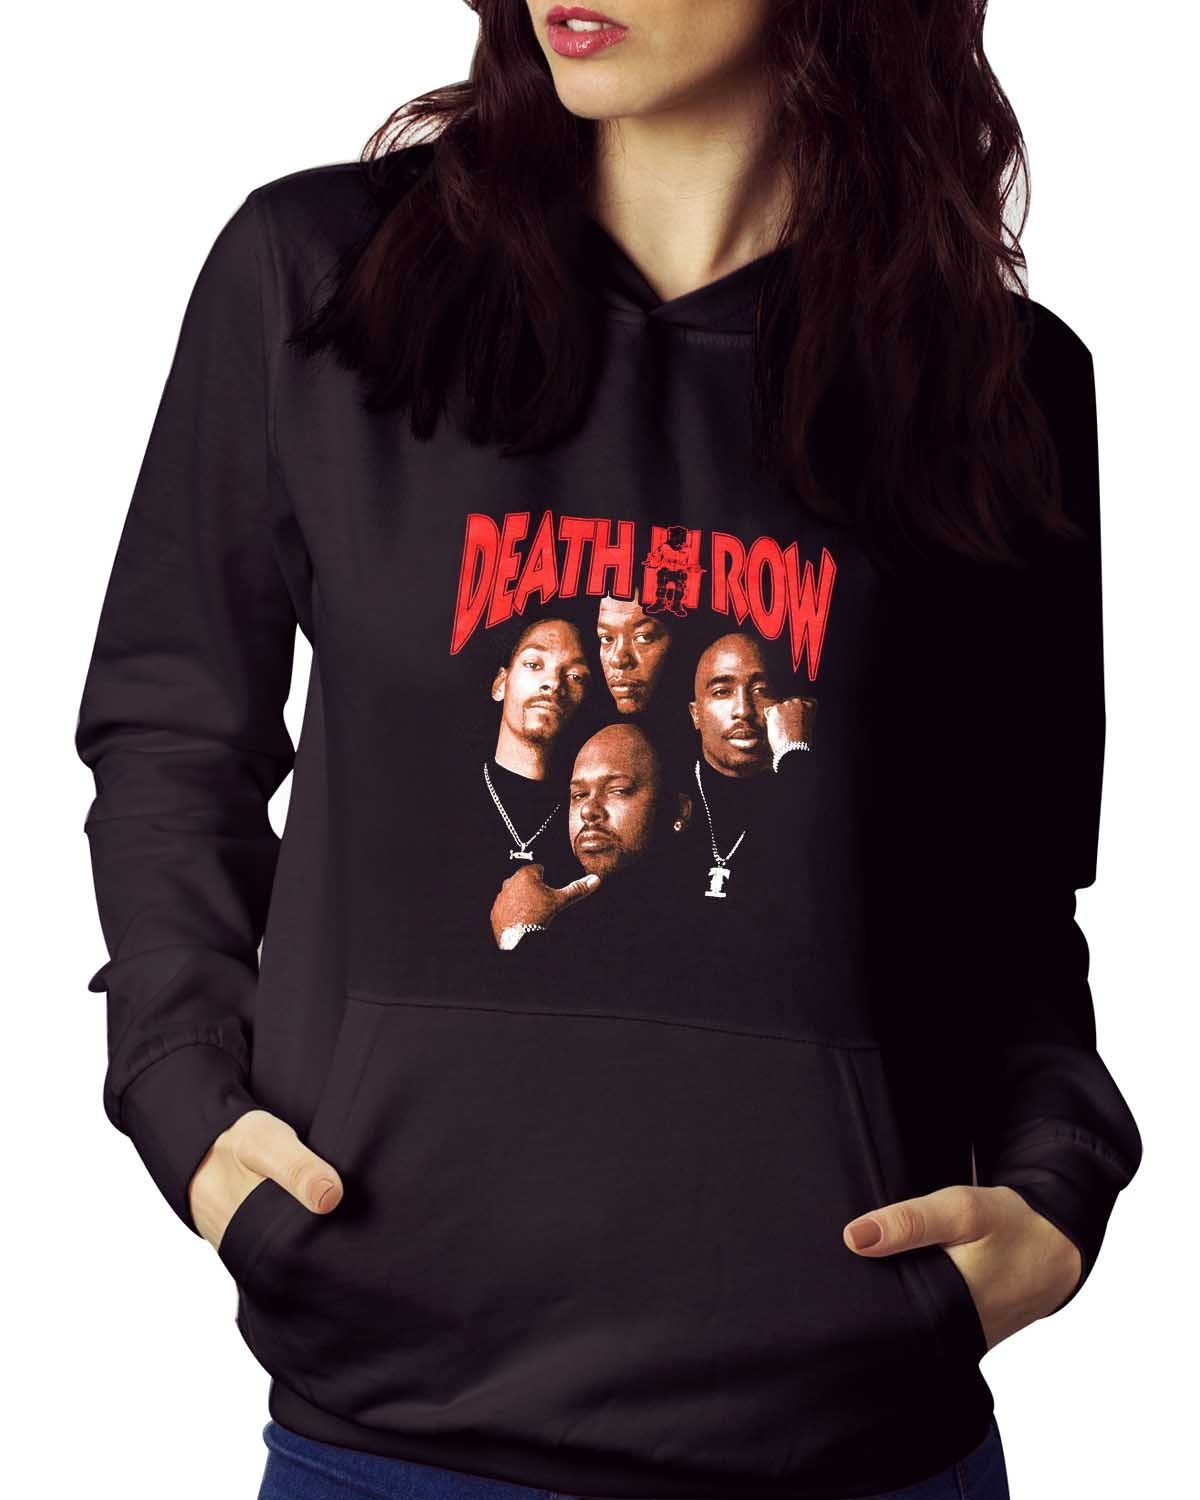 Death Row Records Tupac Dre Poster Shirts